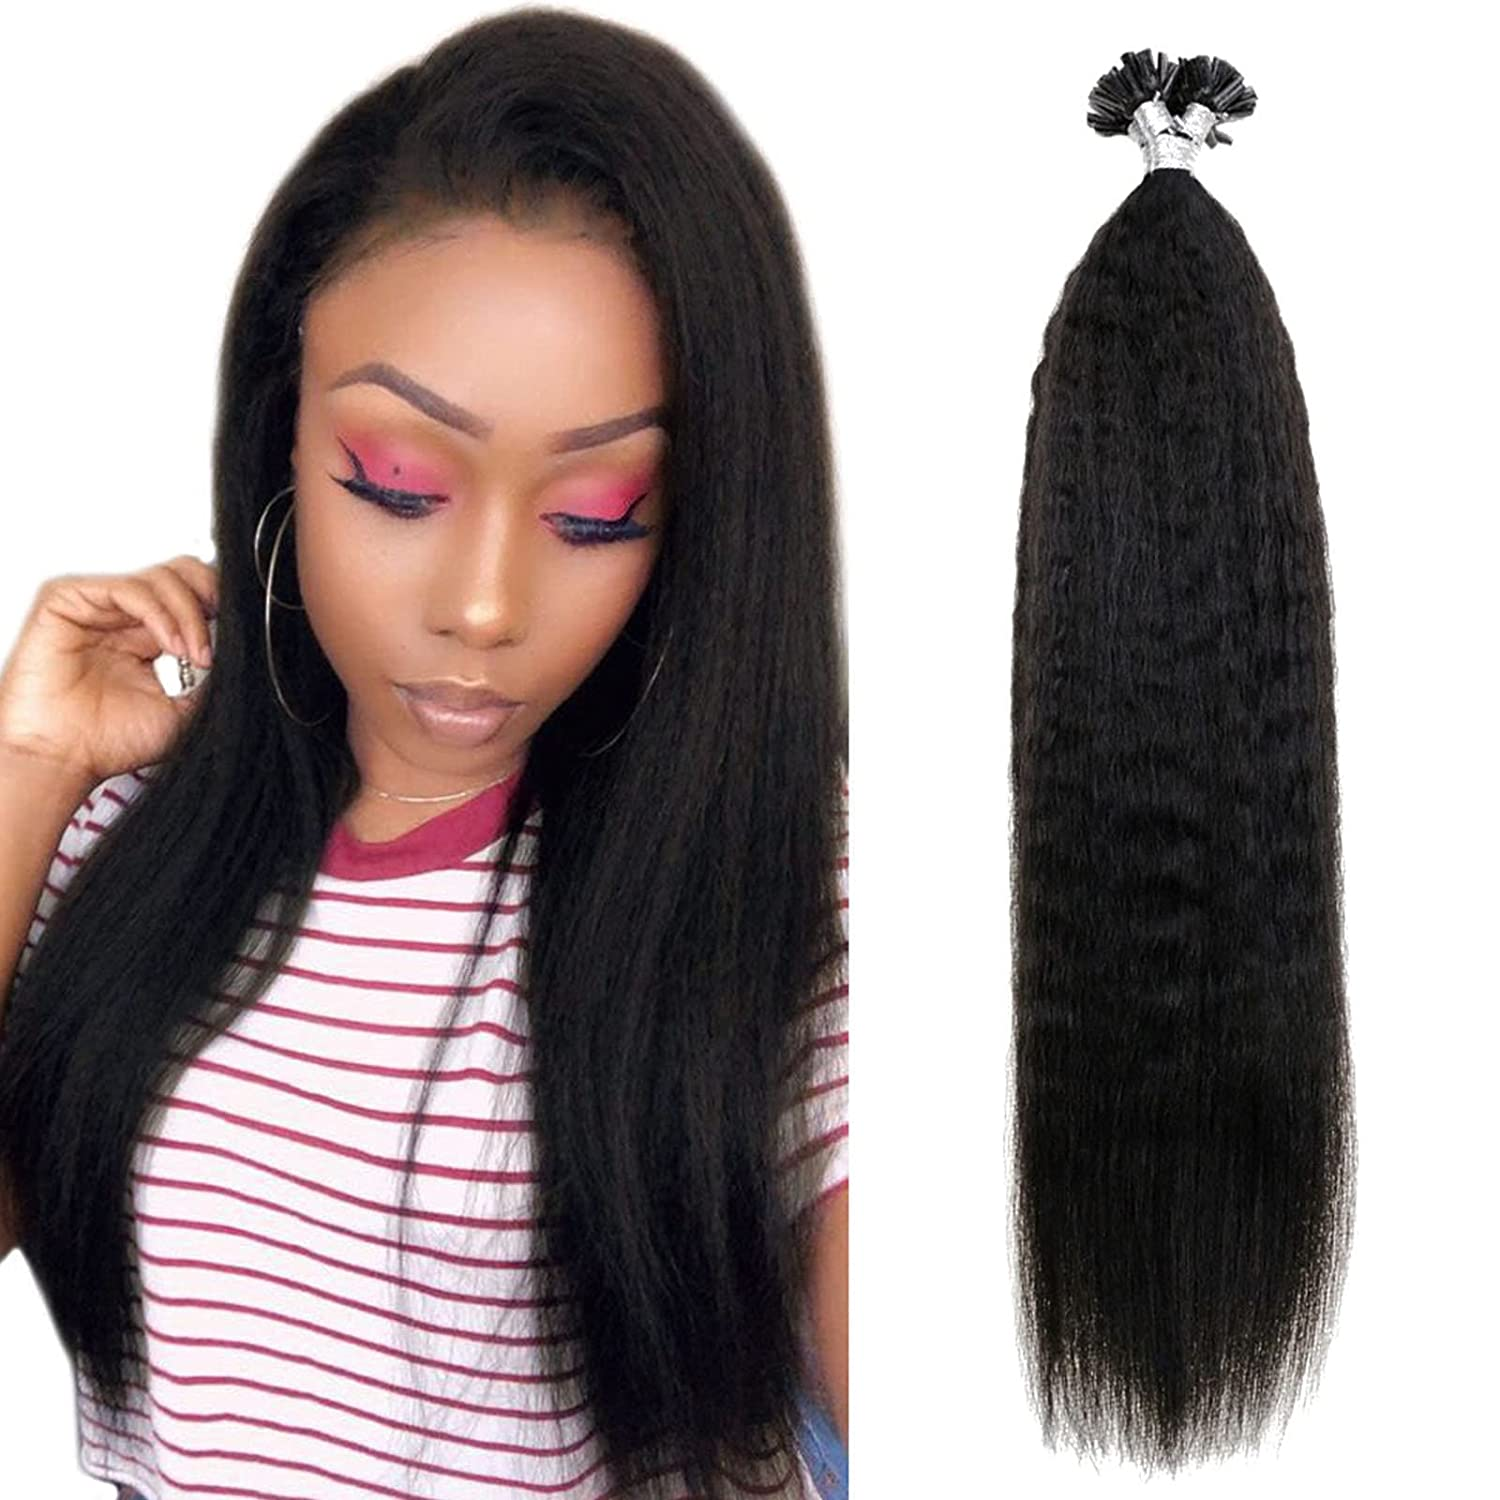 RUNATURE Dedication 18 Inch Clearance SALE Limited time Keratin Extensions Human Strand Per 1g 50 Hair